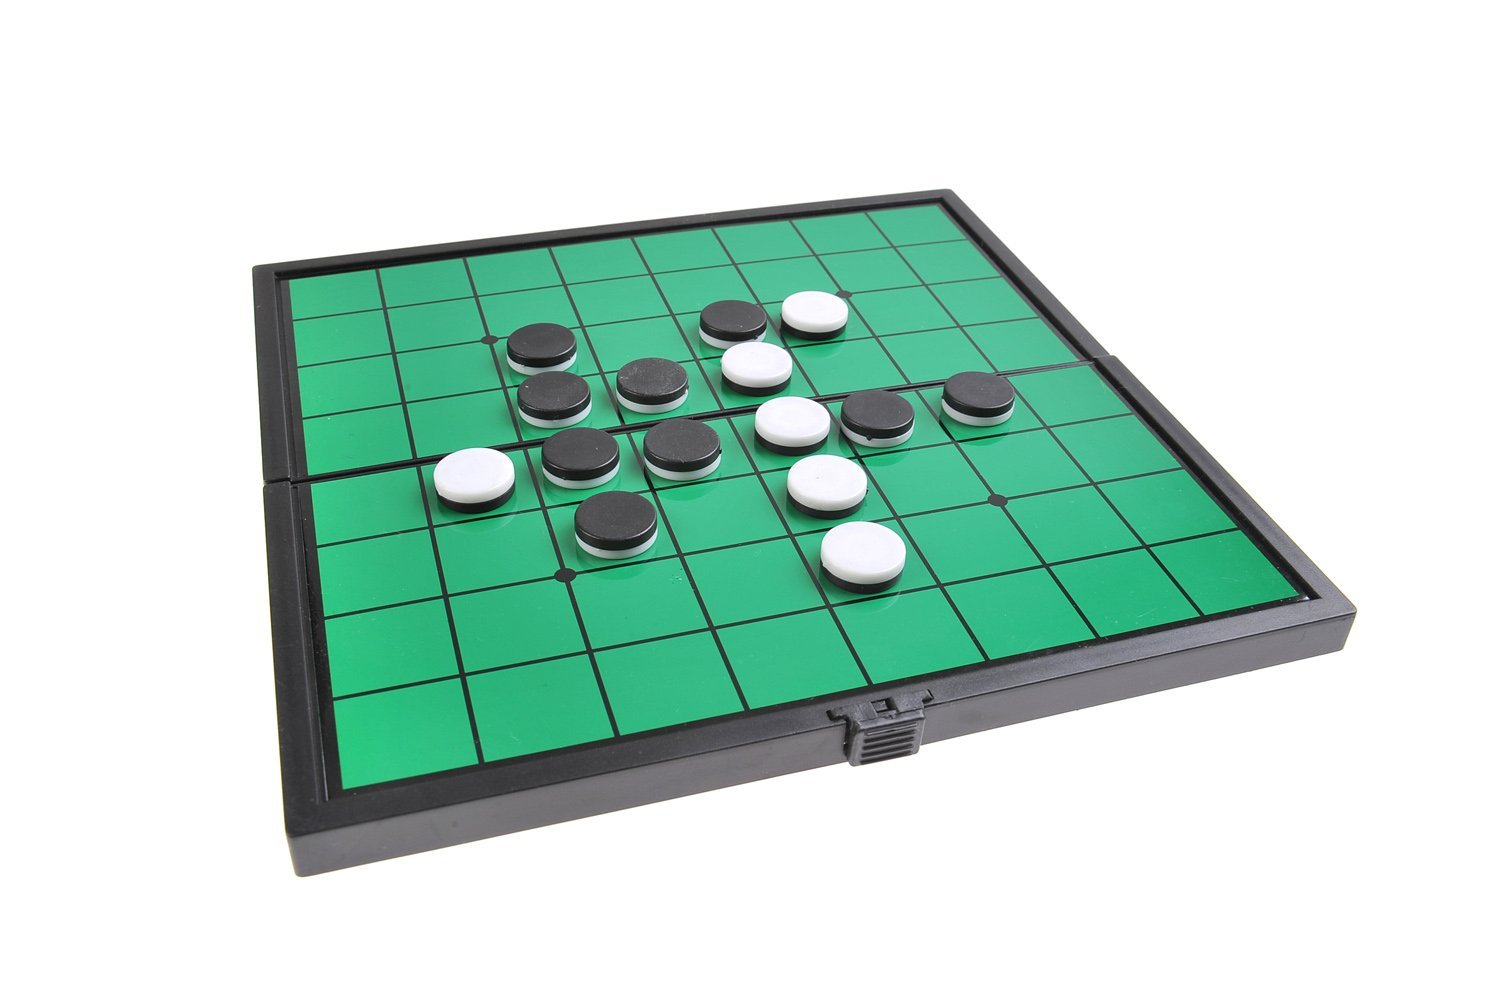 Quantum Abacus Magnetic Board Game (Compact Travel Size): Reversi - Magnetic Game Pieces, Foldable Board, 7.48 x 7.48 x 0.39 inches, Mod. SC6604 (DE) The Khan Outdoor & Lifestyle Company